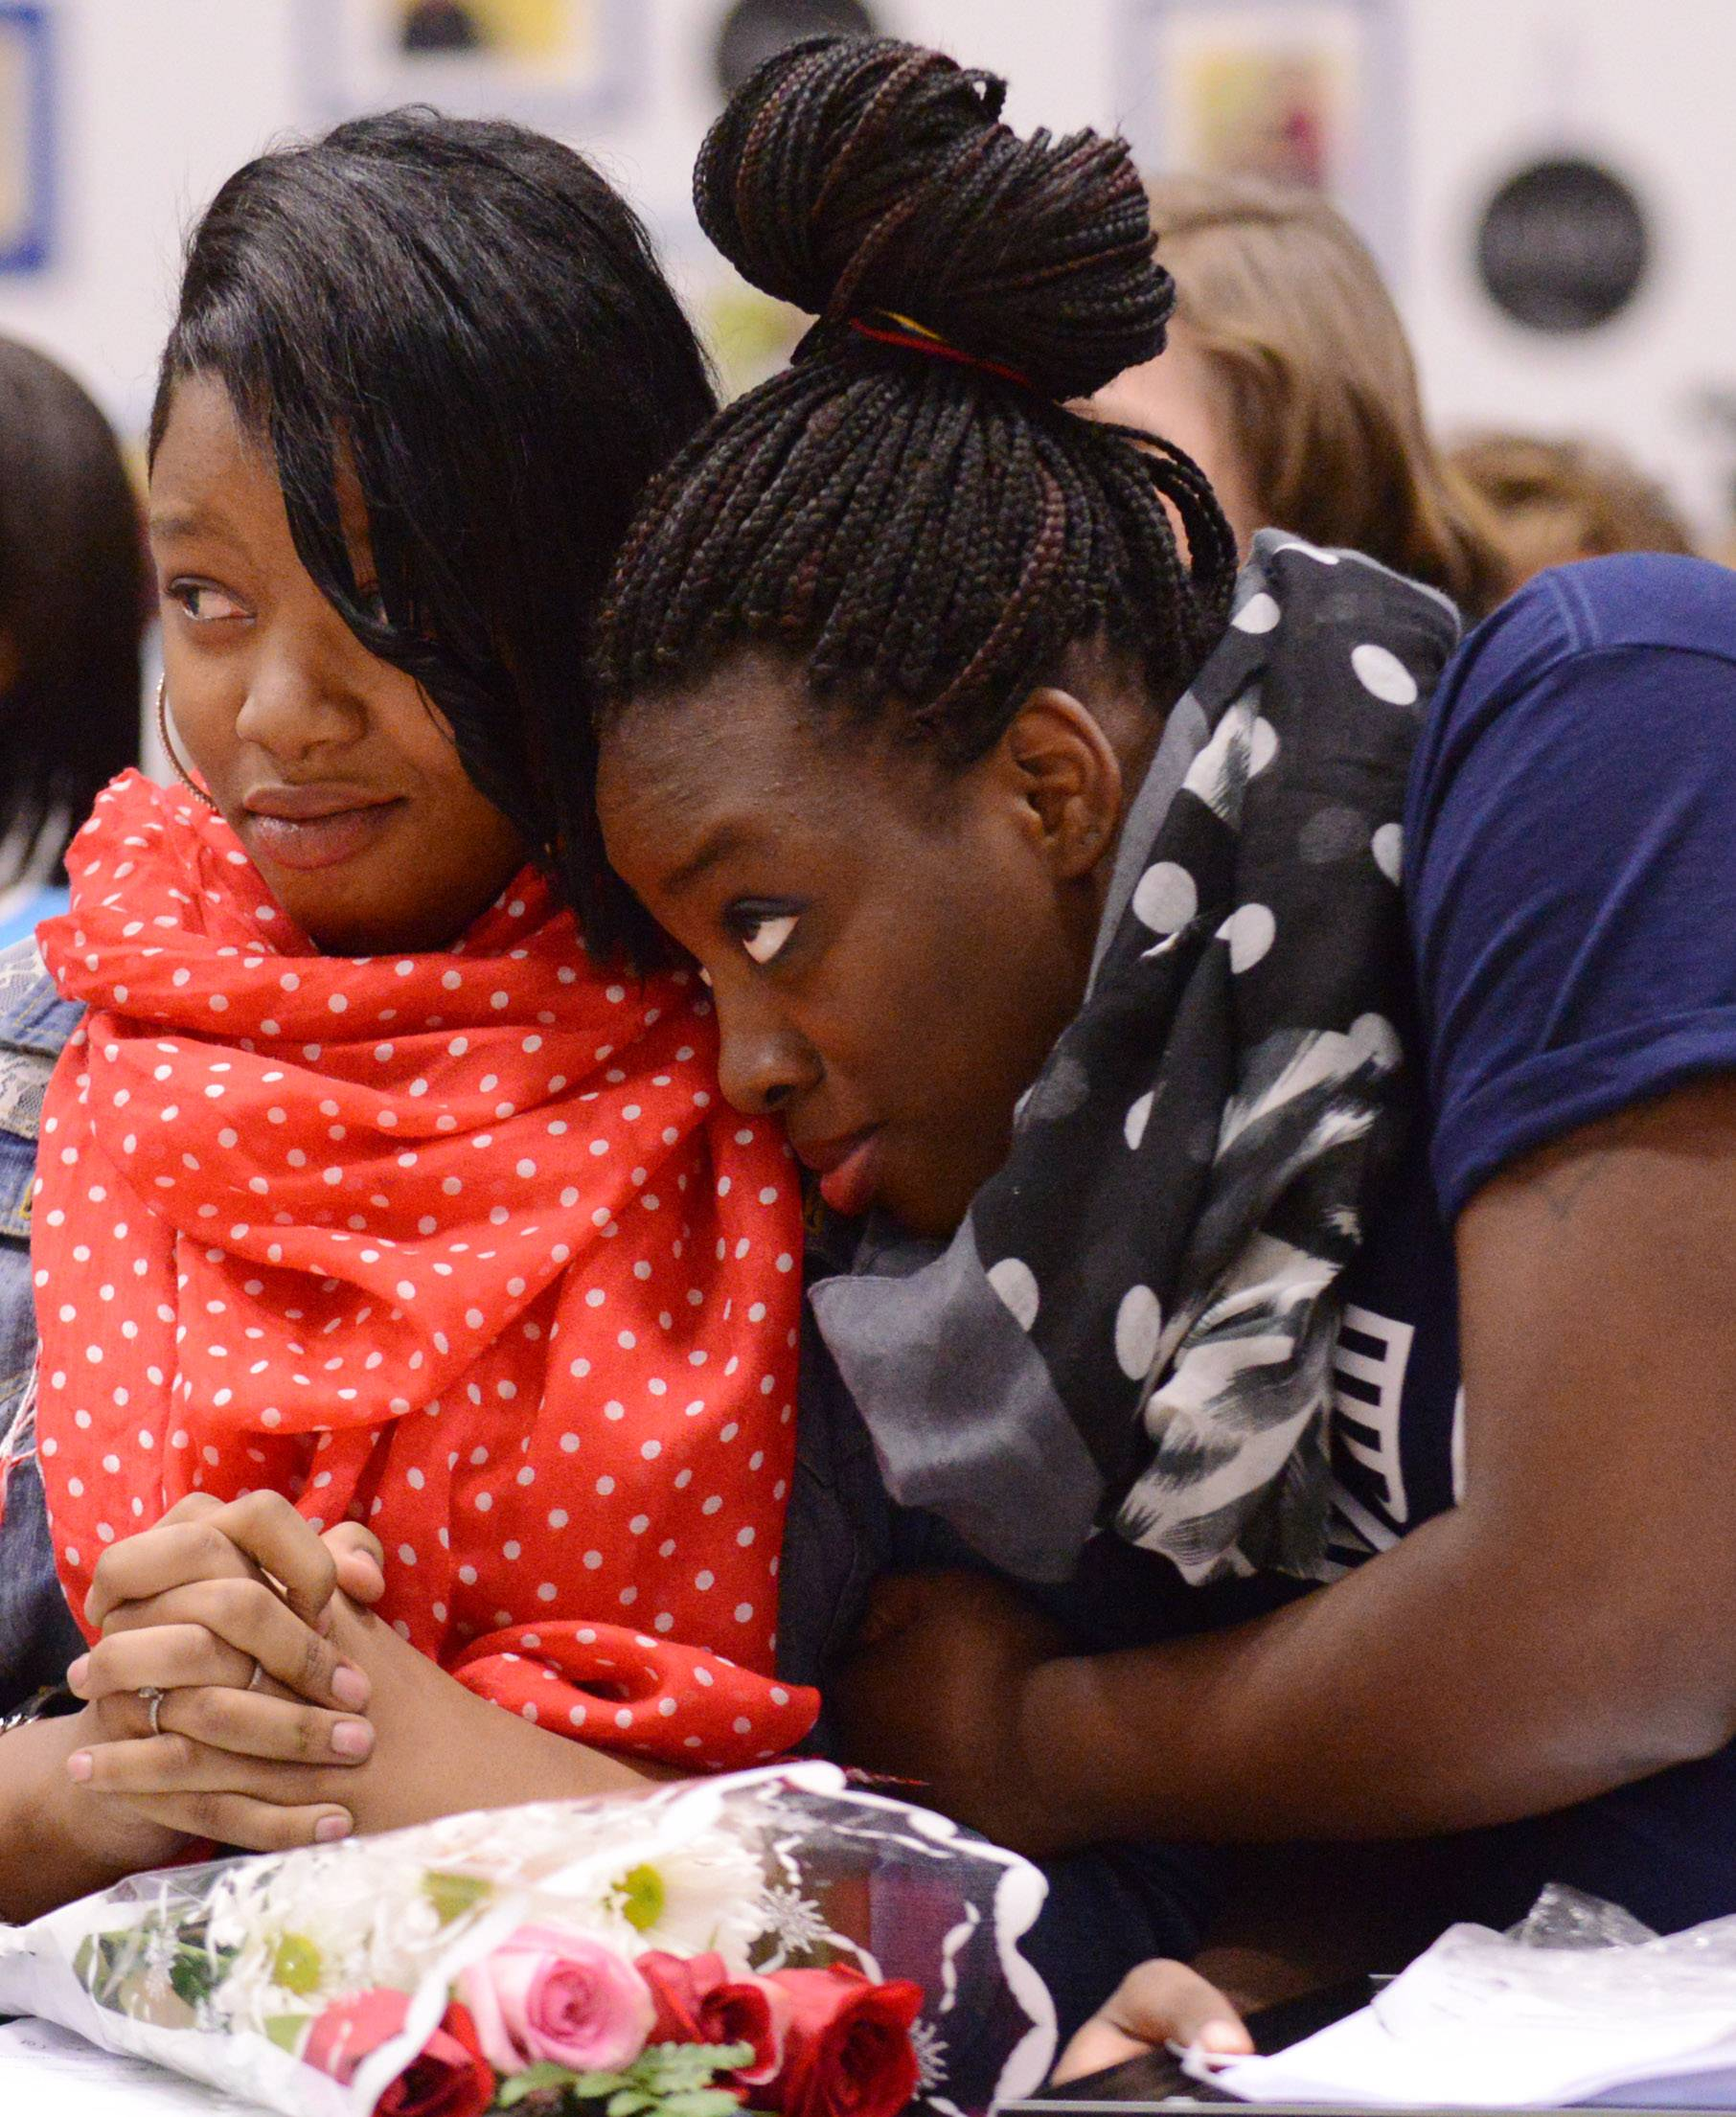 Anastaza Hicks, left, and Jhaneice Johnson wait to hear who will be selected Youth of the Year earlier this week by the Boys & Girls Club of Elgin. Hicks is a freshman and Johnson a senior at Larkin High School.